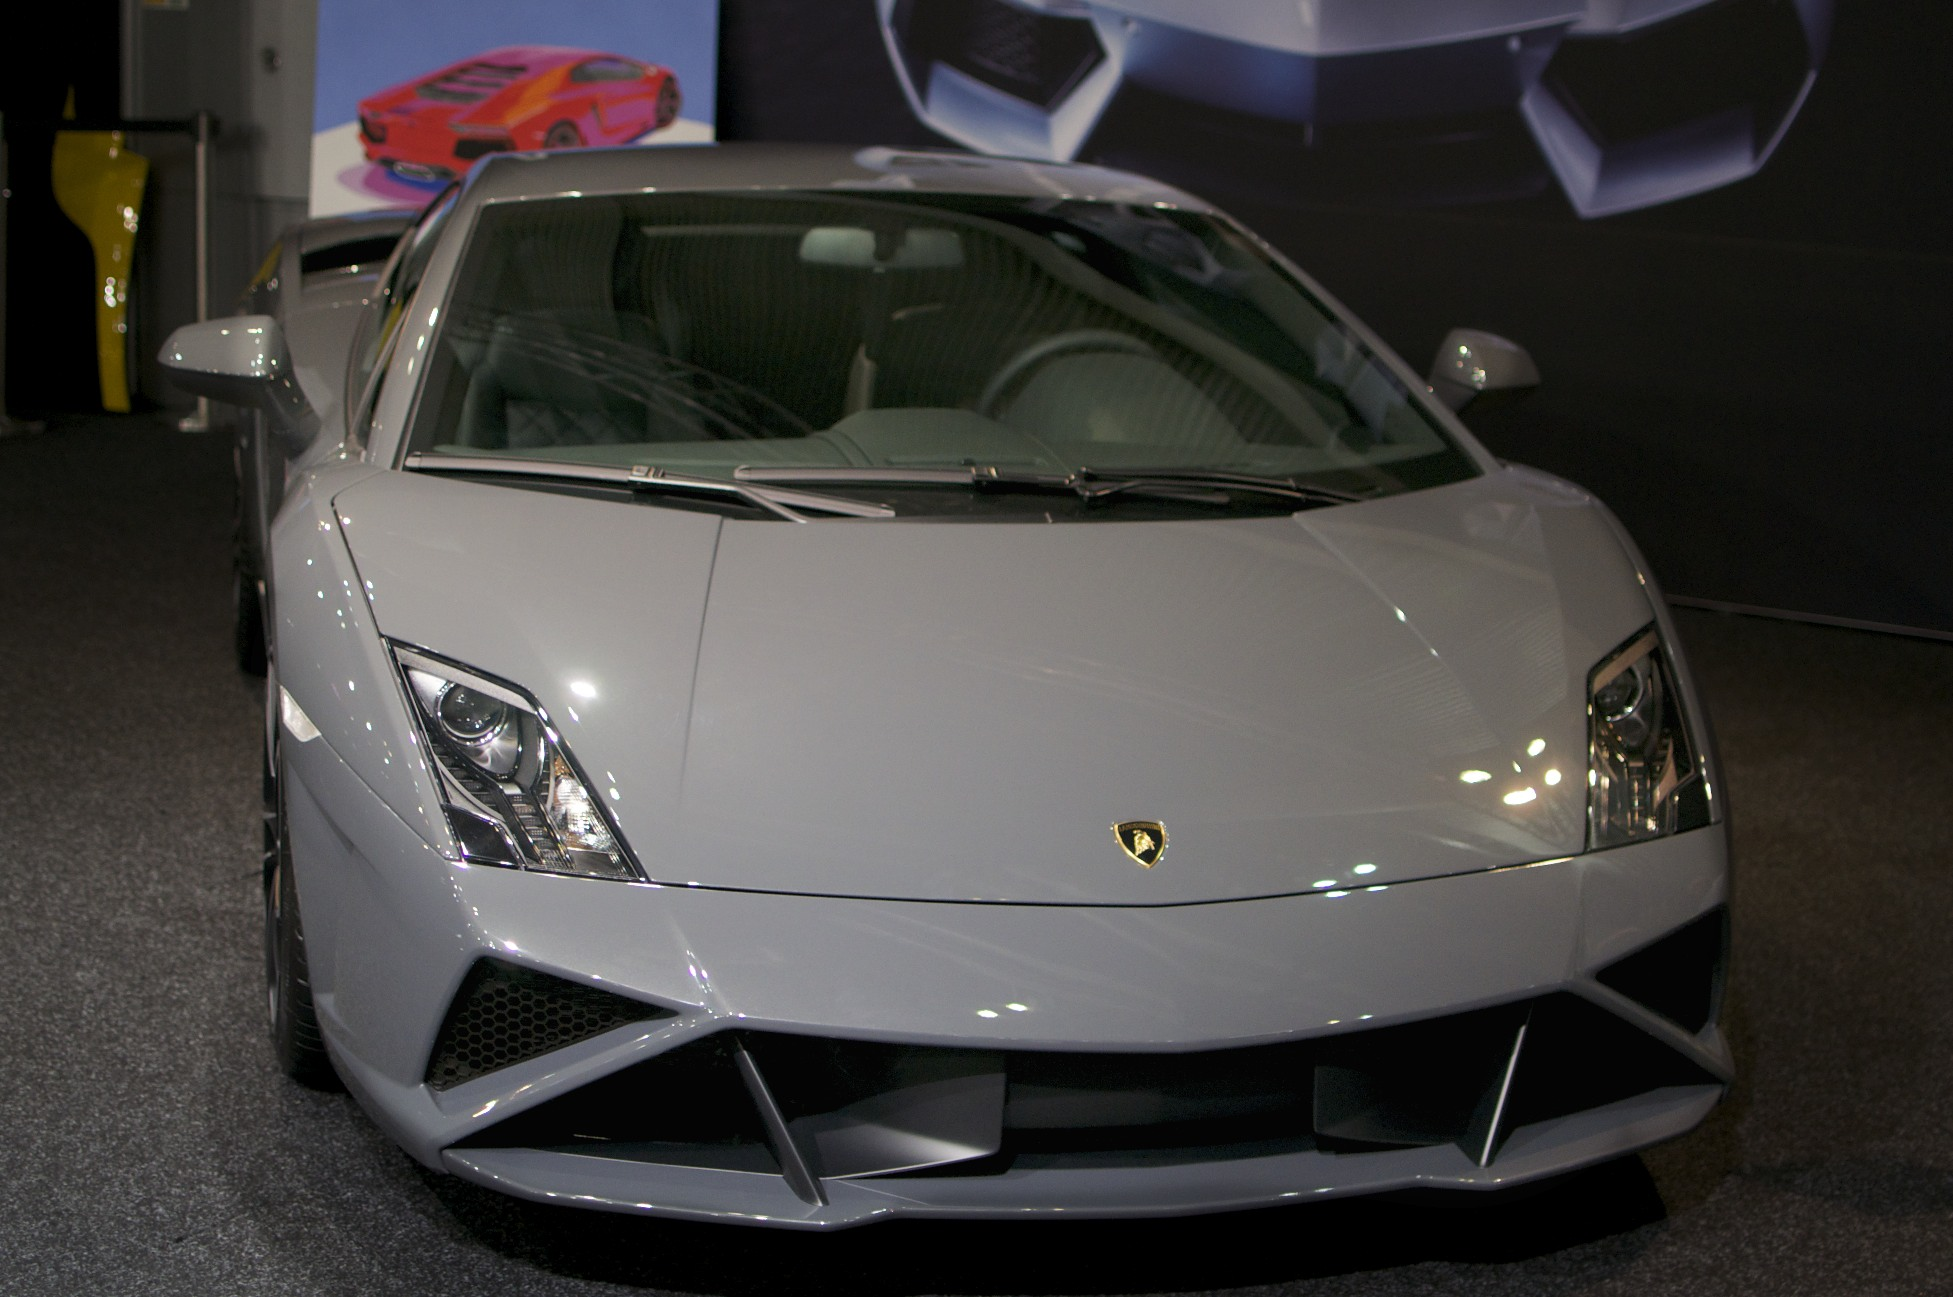 File Lamborghini Gallardo Lp560 4 Facelift Jpg Wikimedia Commons